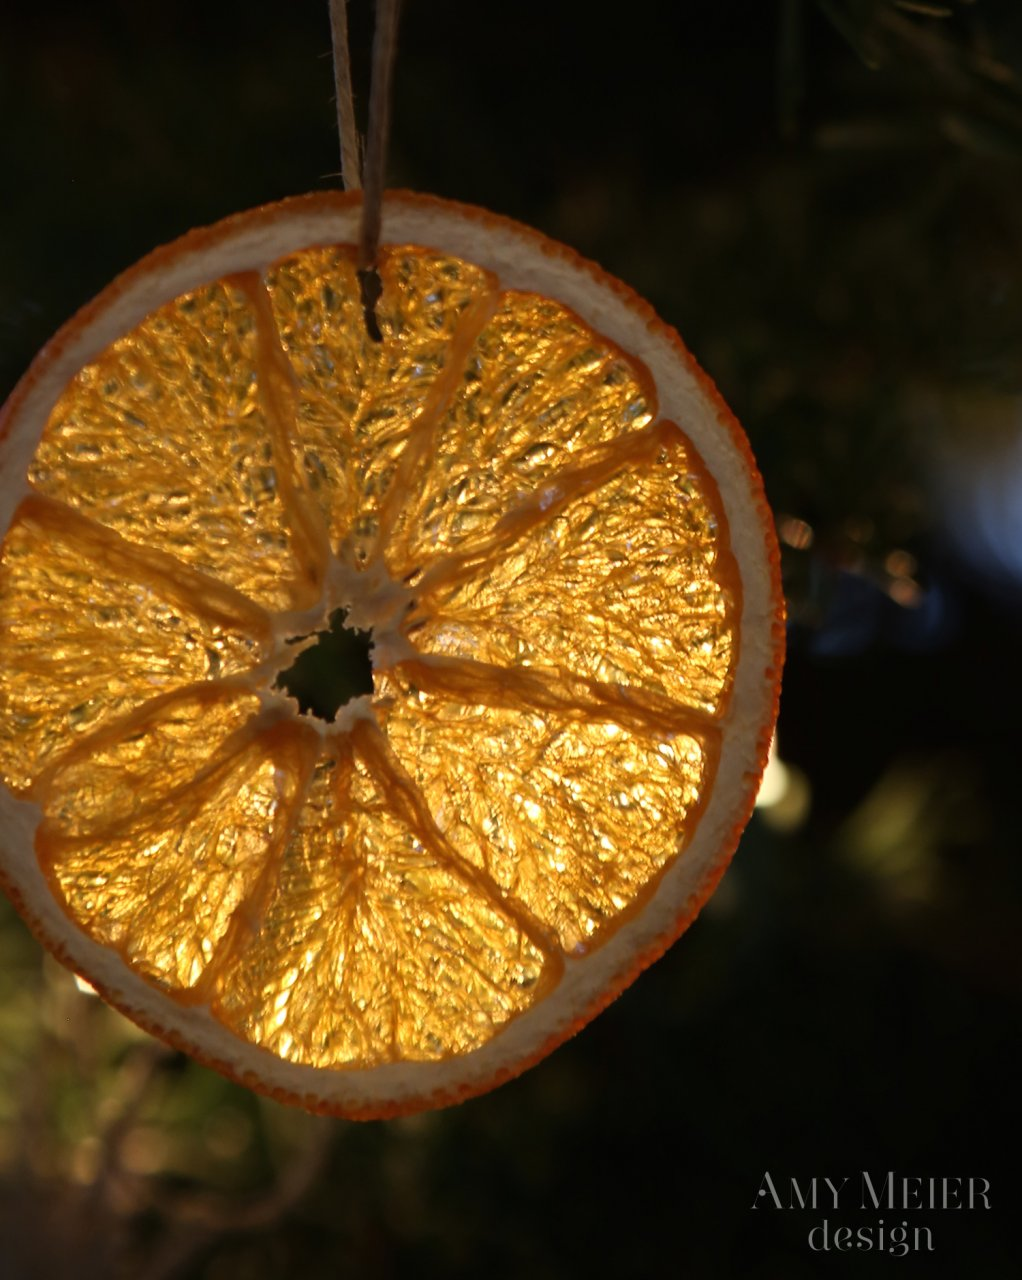 AmyMeierDesign_Xmas_oranges